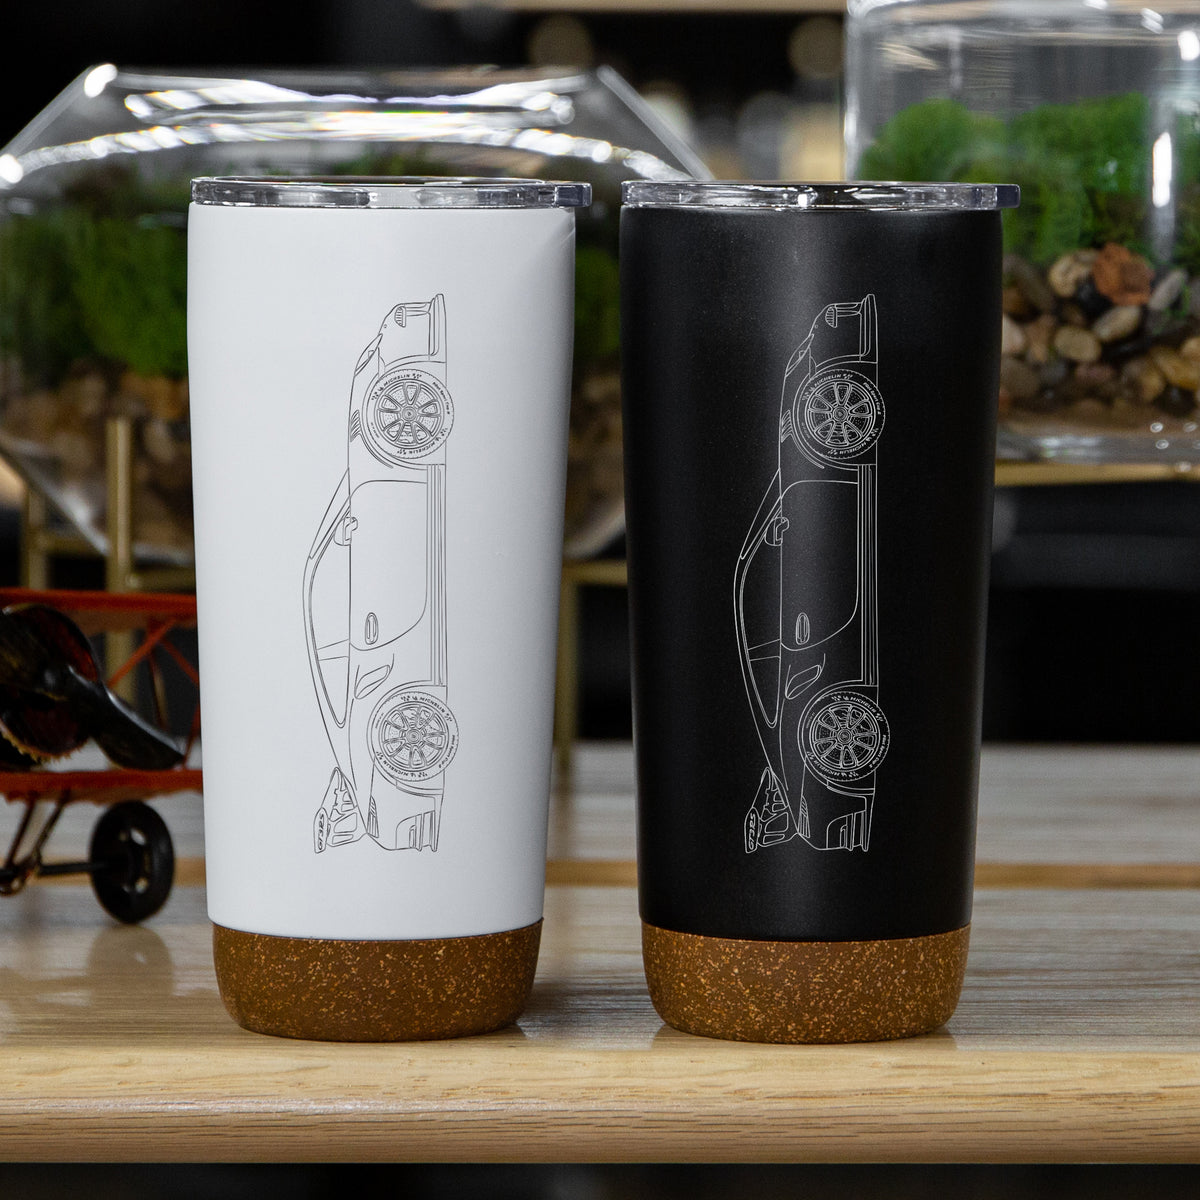 Porsche 911 GT3RS Insulated Stainless Steel Coffee Tumbler - 20 oz